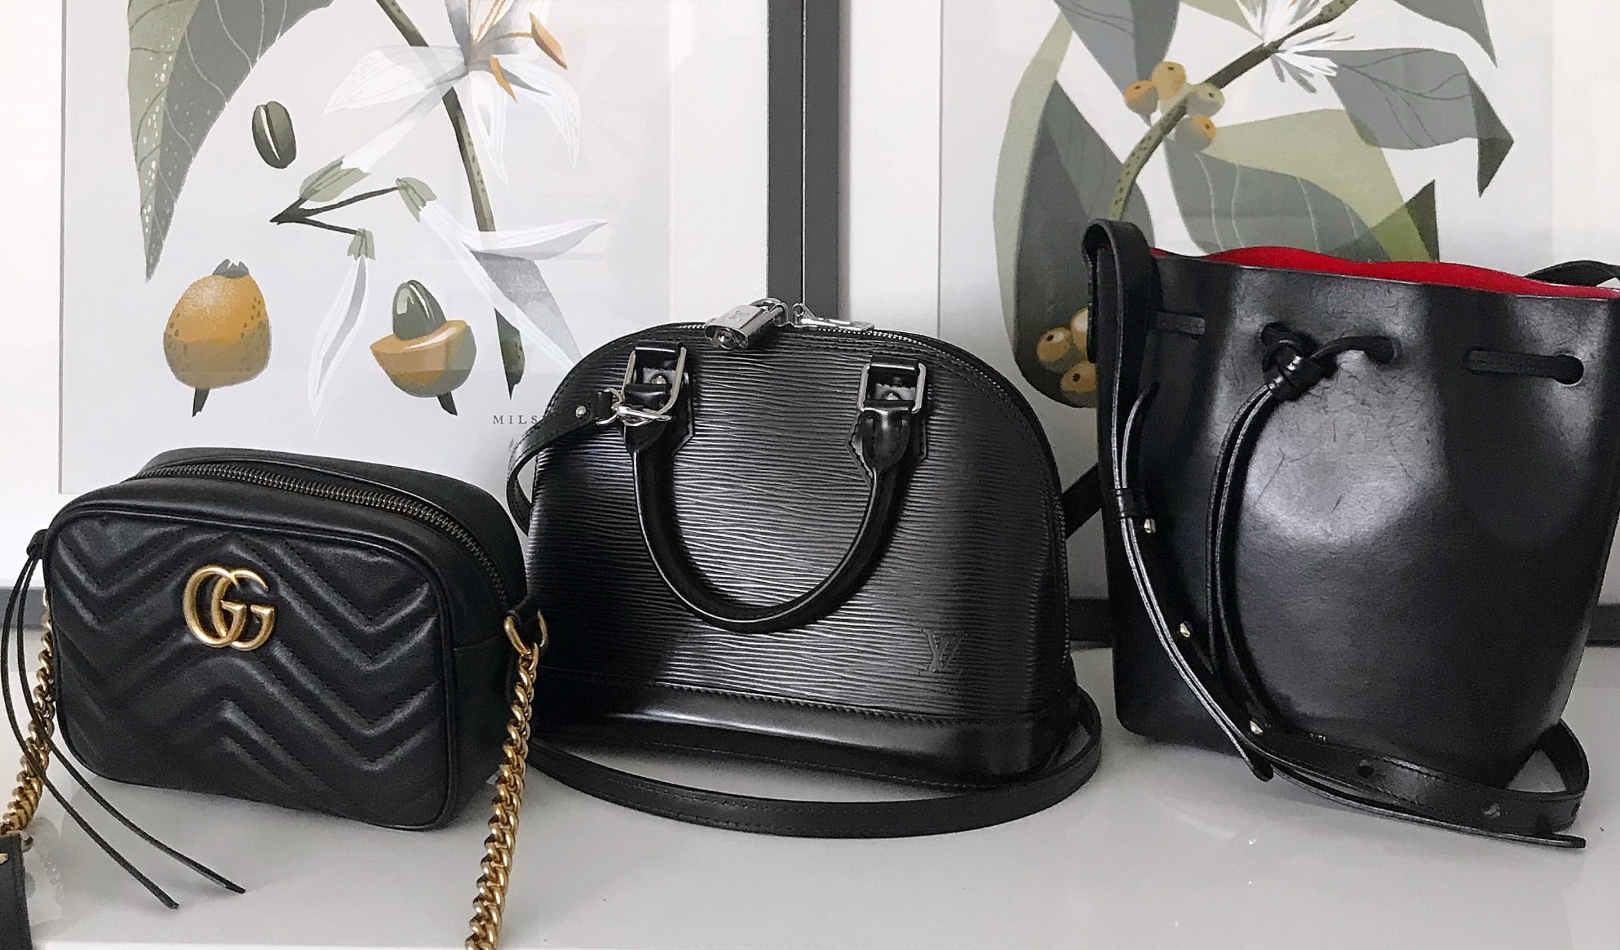 a4892095a Gucci Marmont, Louis Vuitton Epi Alma BB, Mansur Gavriel Mini Mini Bucket  Bag